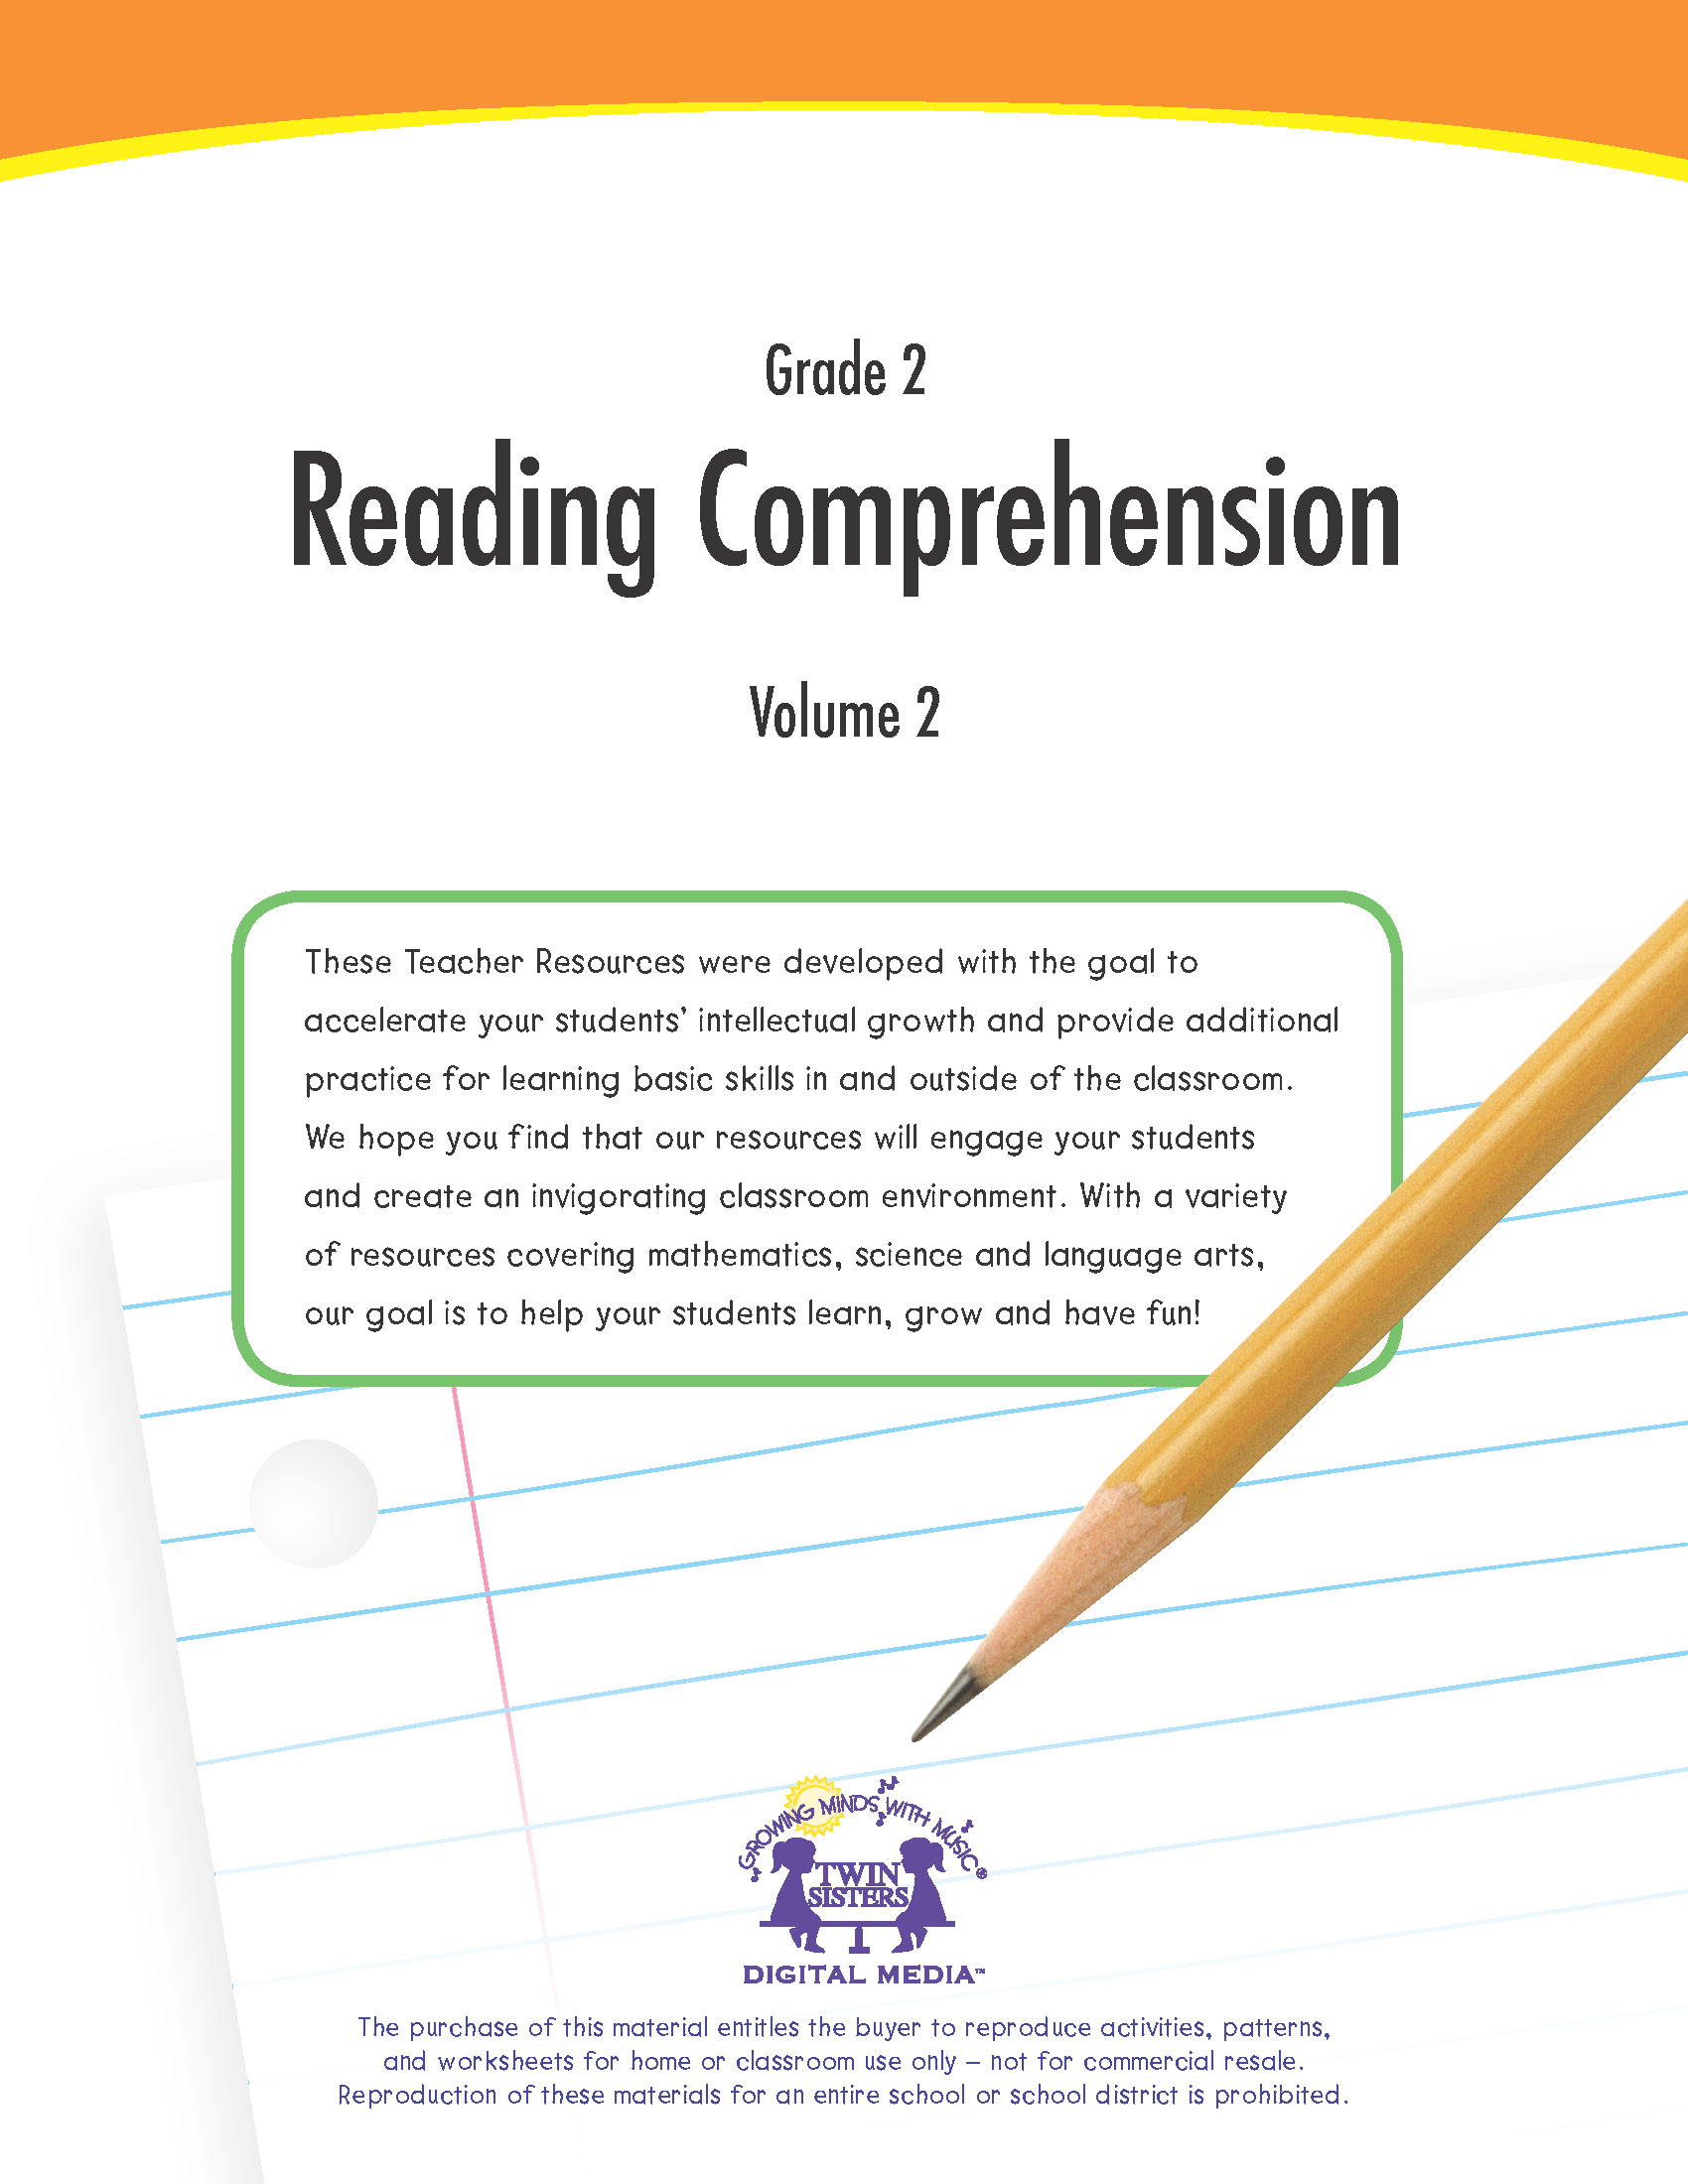 Grade 2 Reading Comprehension Volume 2